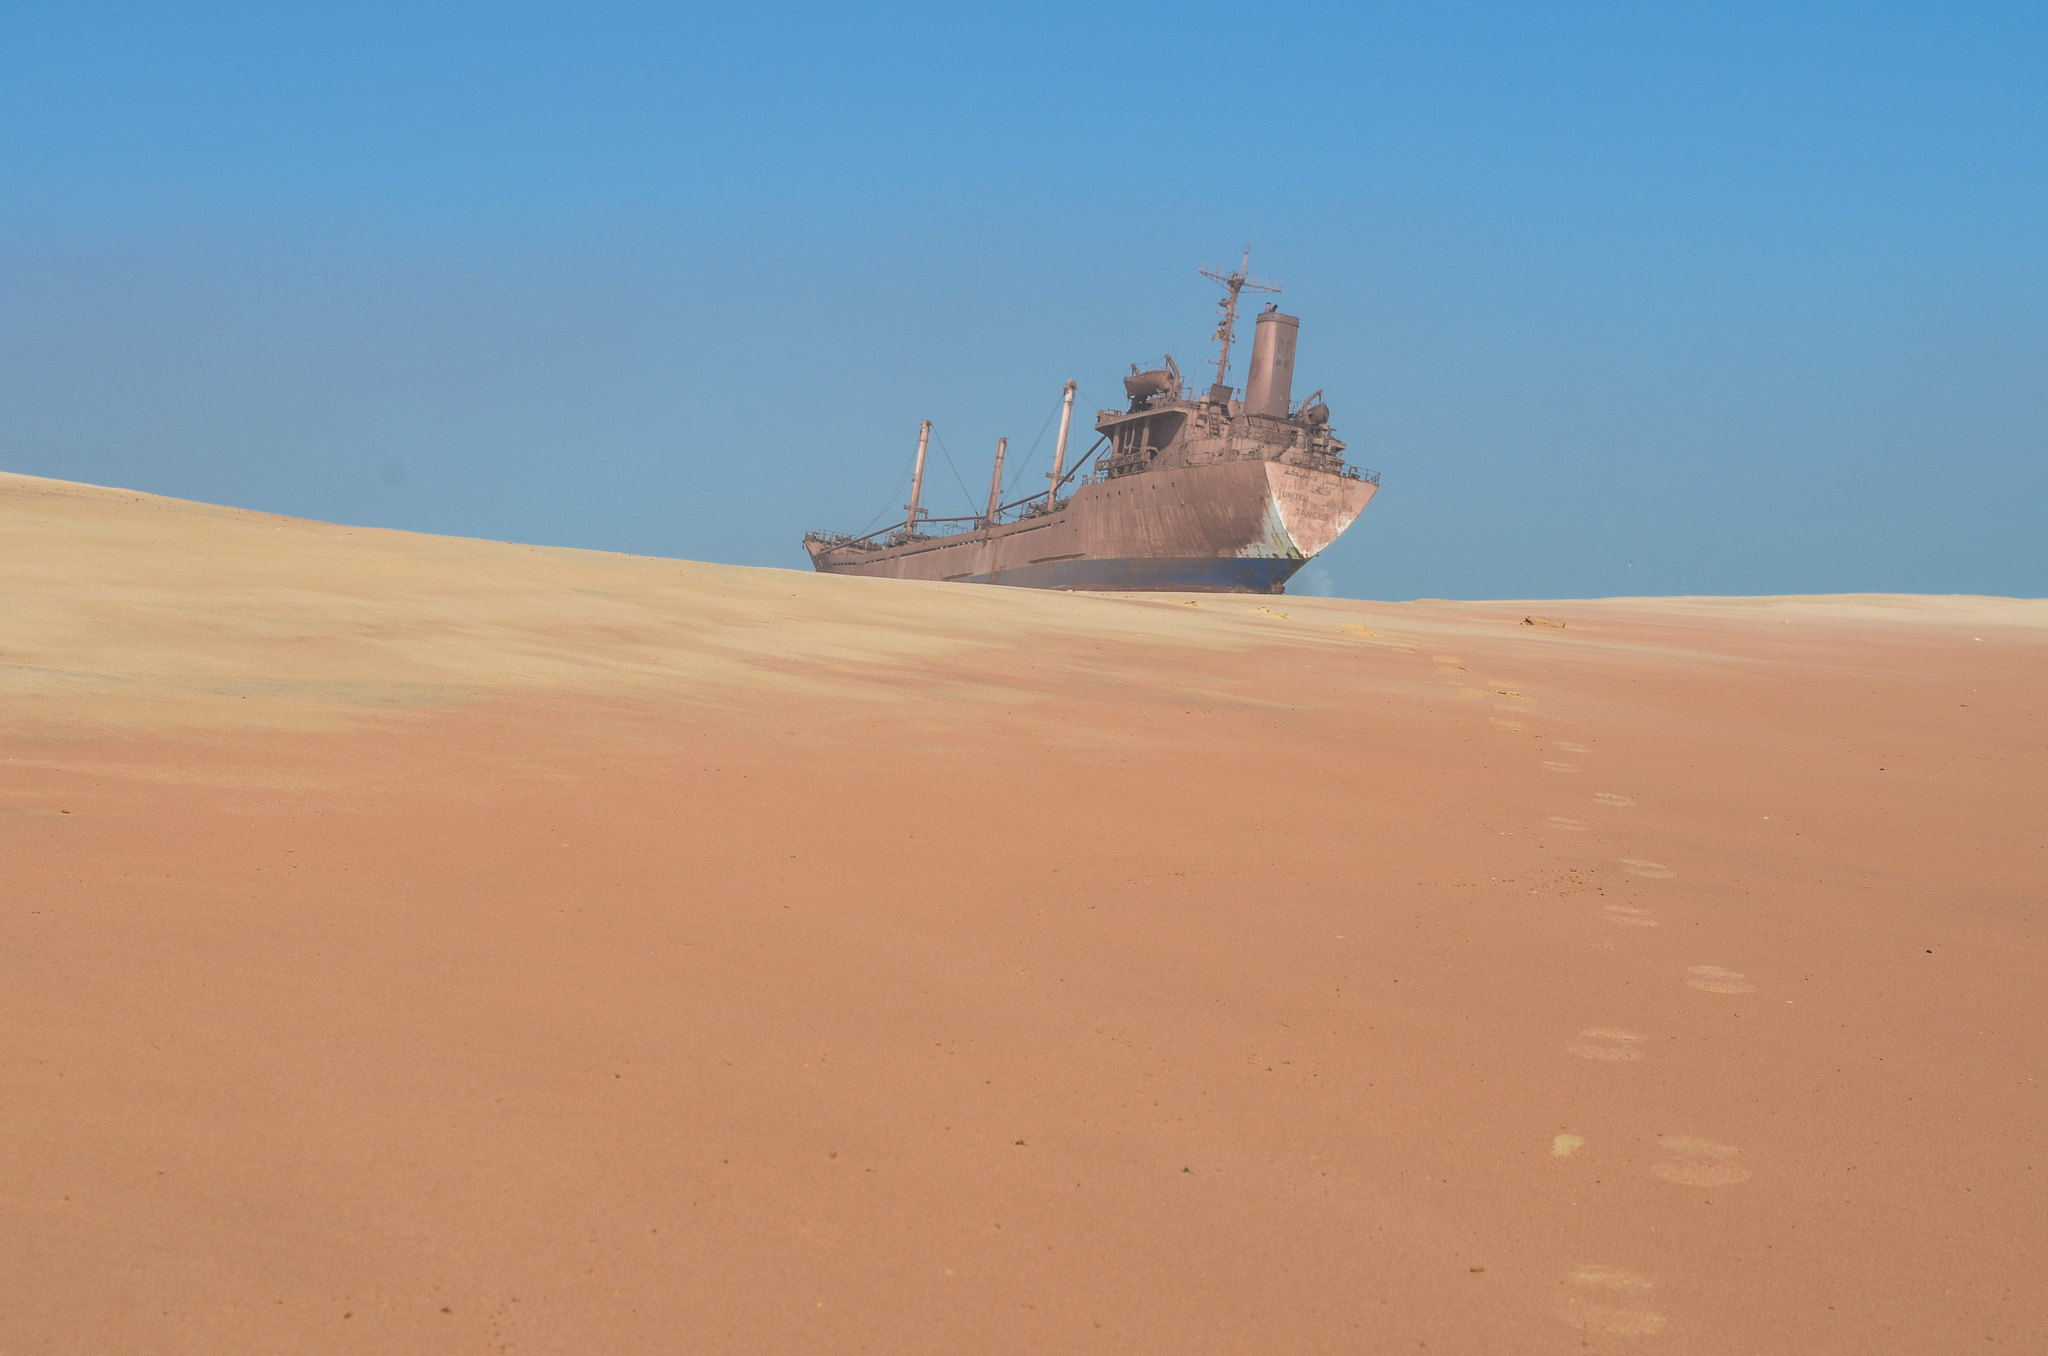 Shipwreck in the desert.